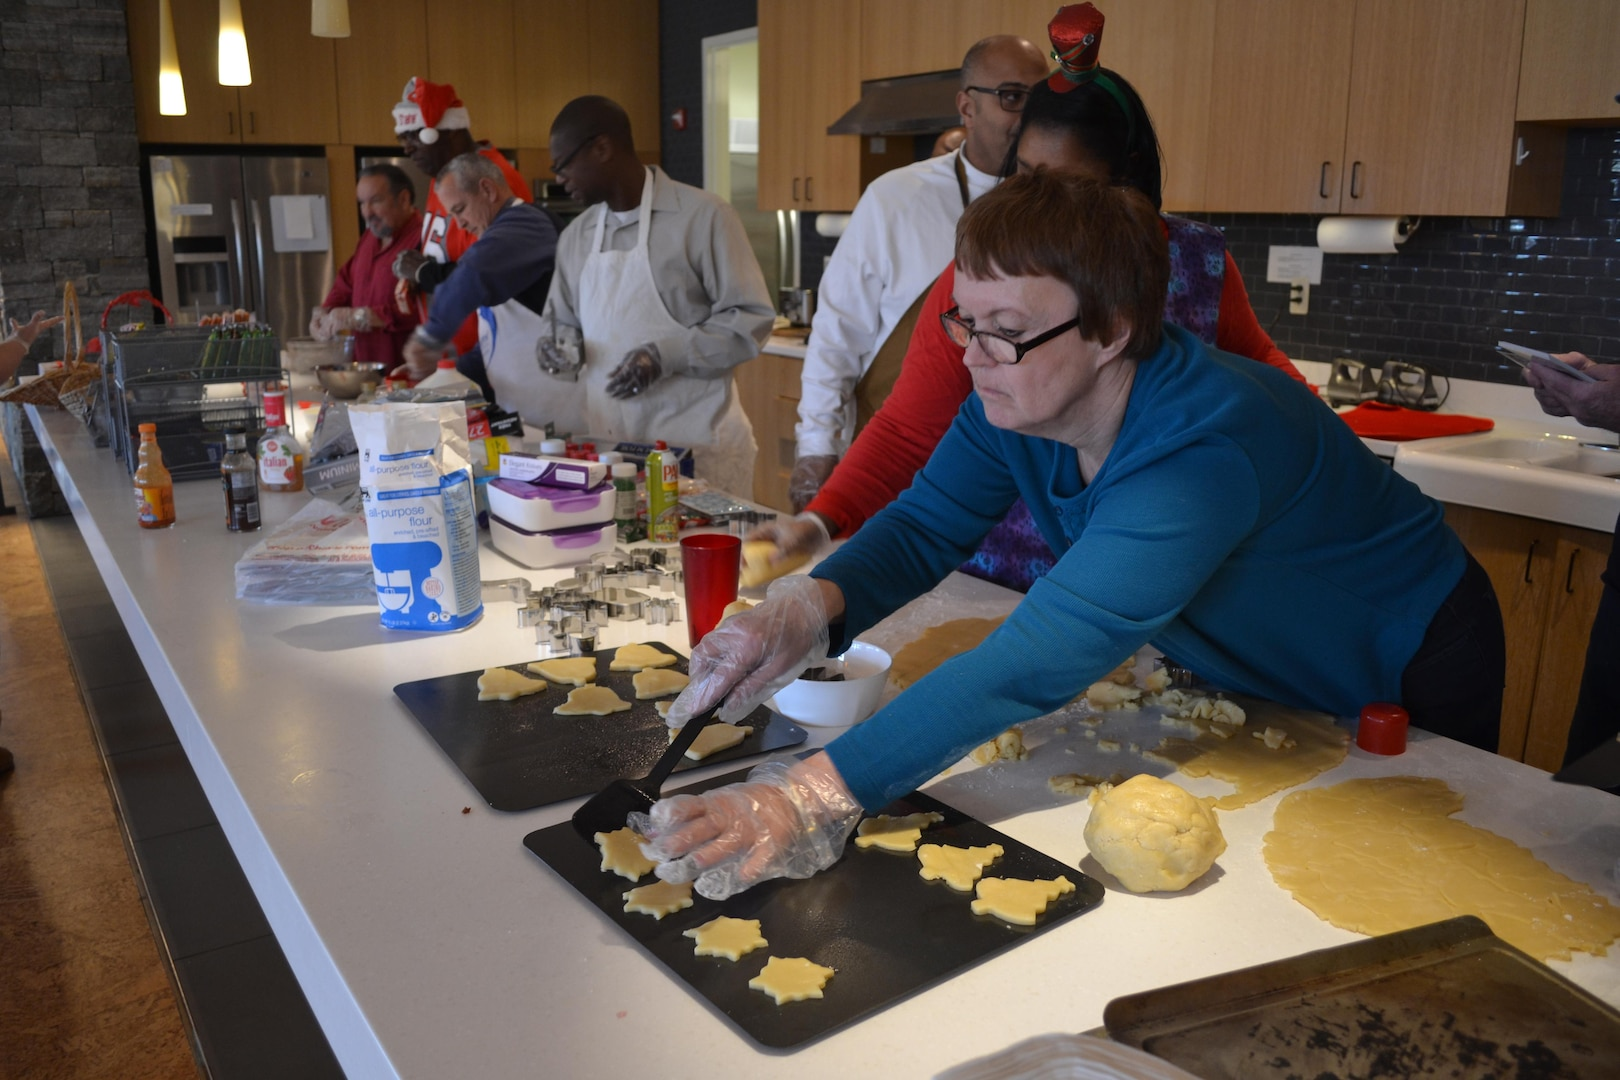 Judy Durnin places newly formed cookies on a baking sheet, Dec. 21, 2016, at the USO Warrior and Family Center, Fort Belvoir, Virginia.